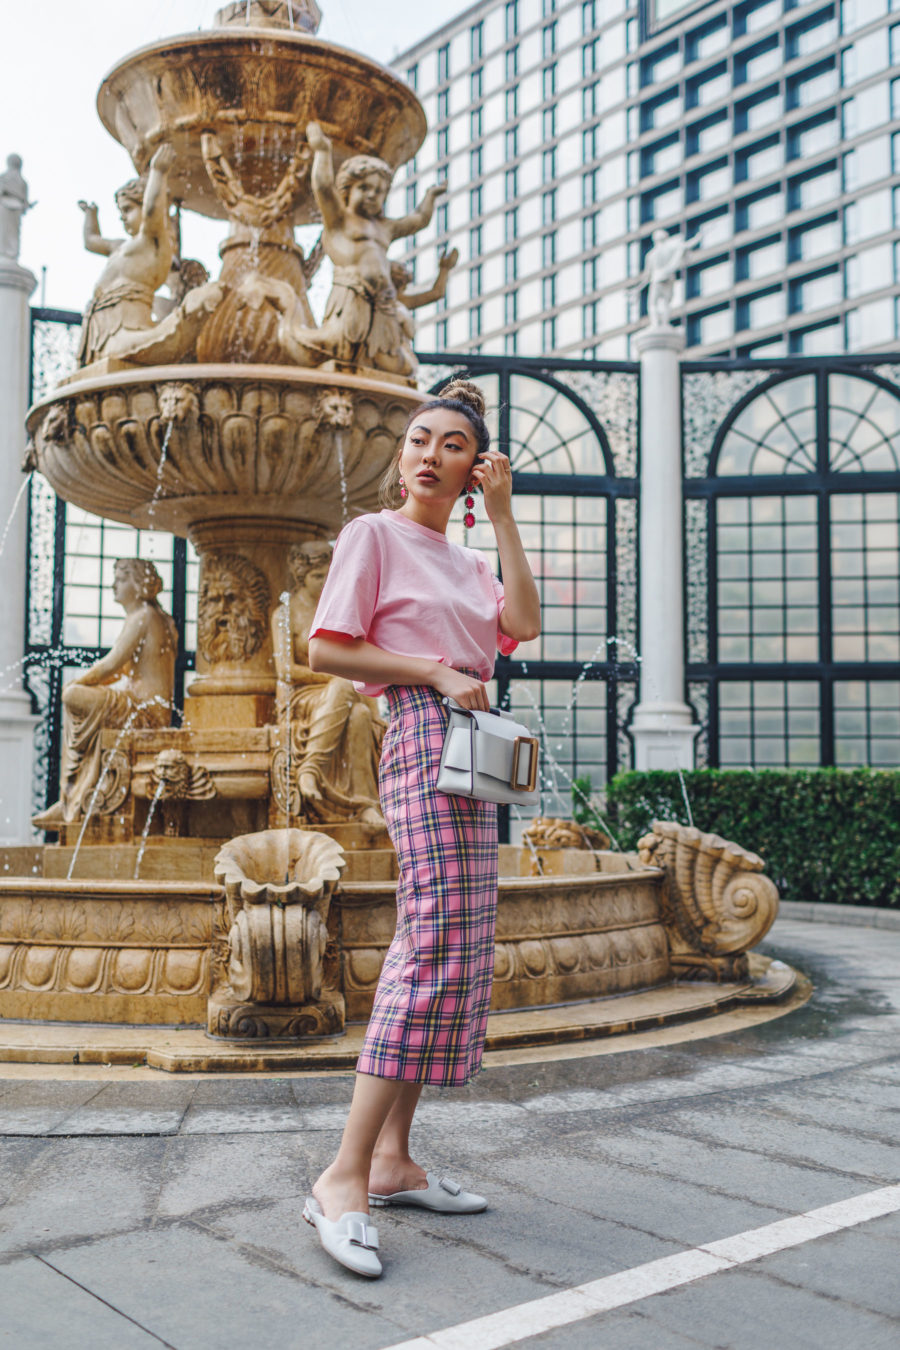 spring 2019 capsule wardrobe - Chic travel outfits, pink plaid skirt, pink monochrome outfit, summer travel outfits // Notjessfashion.com